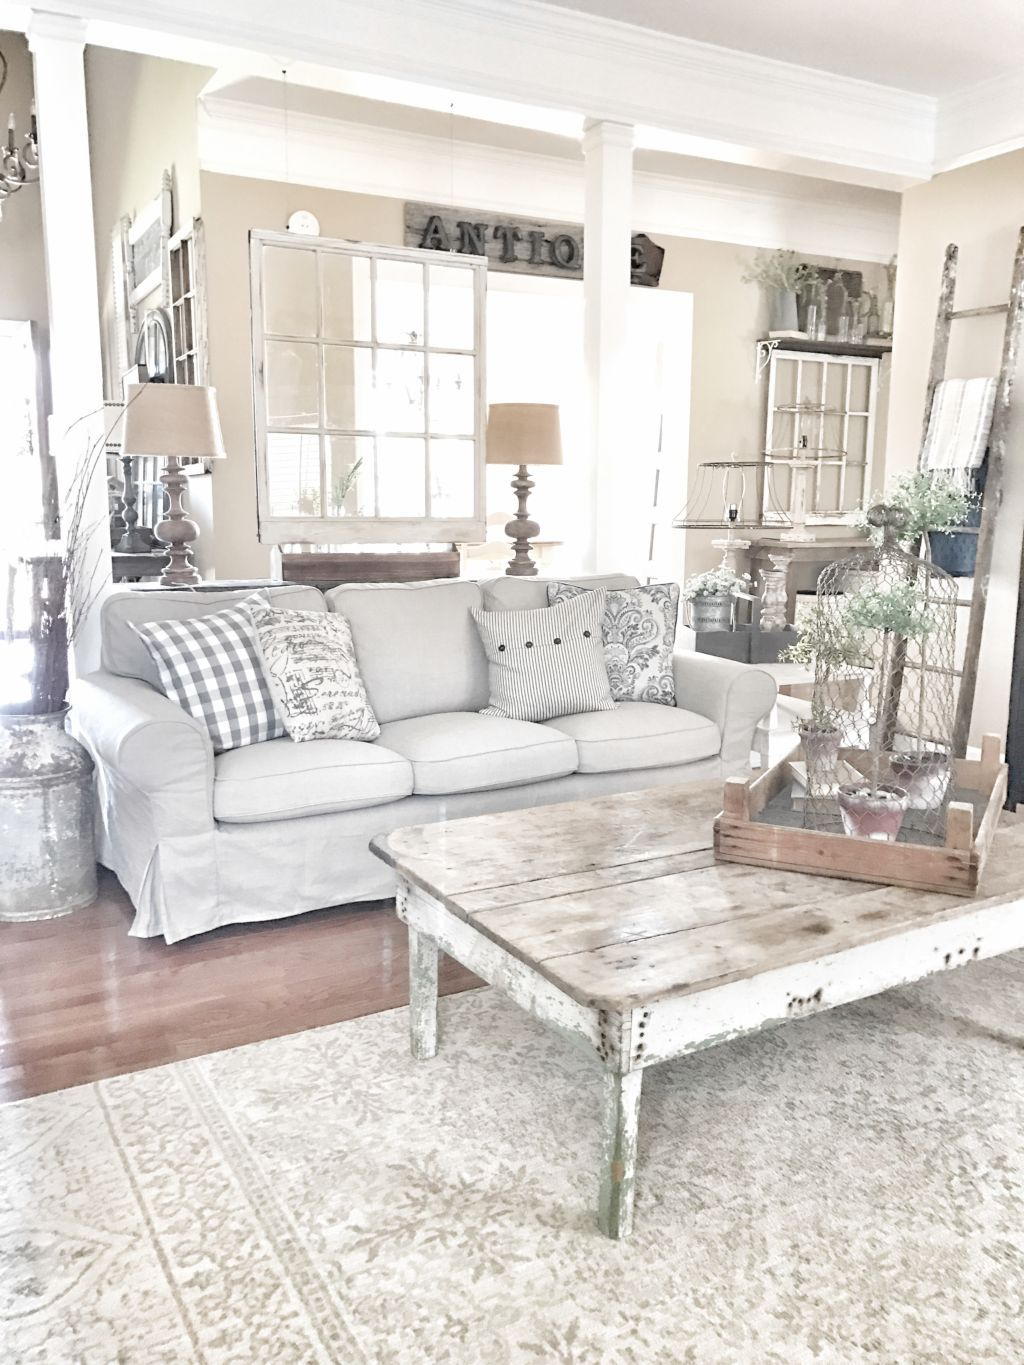 80 Rustic Farmhouse Living Room want this Coffee